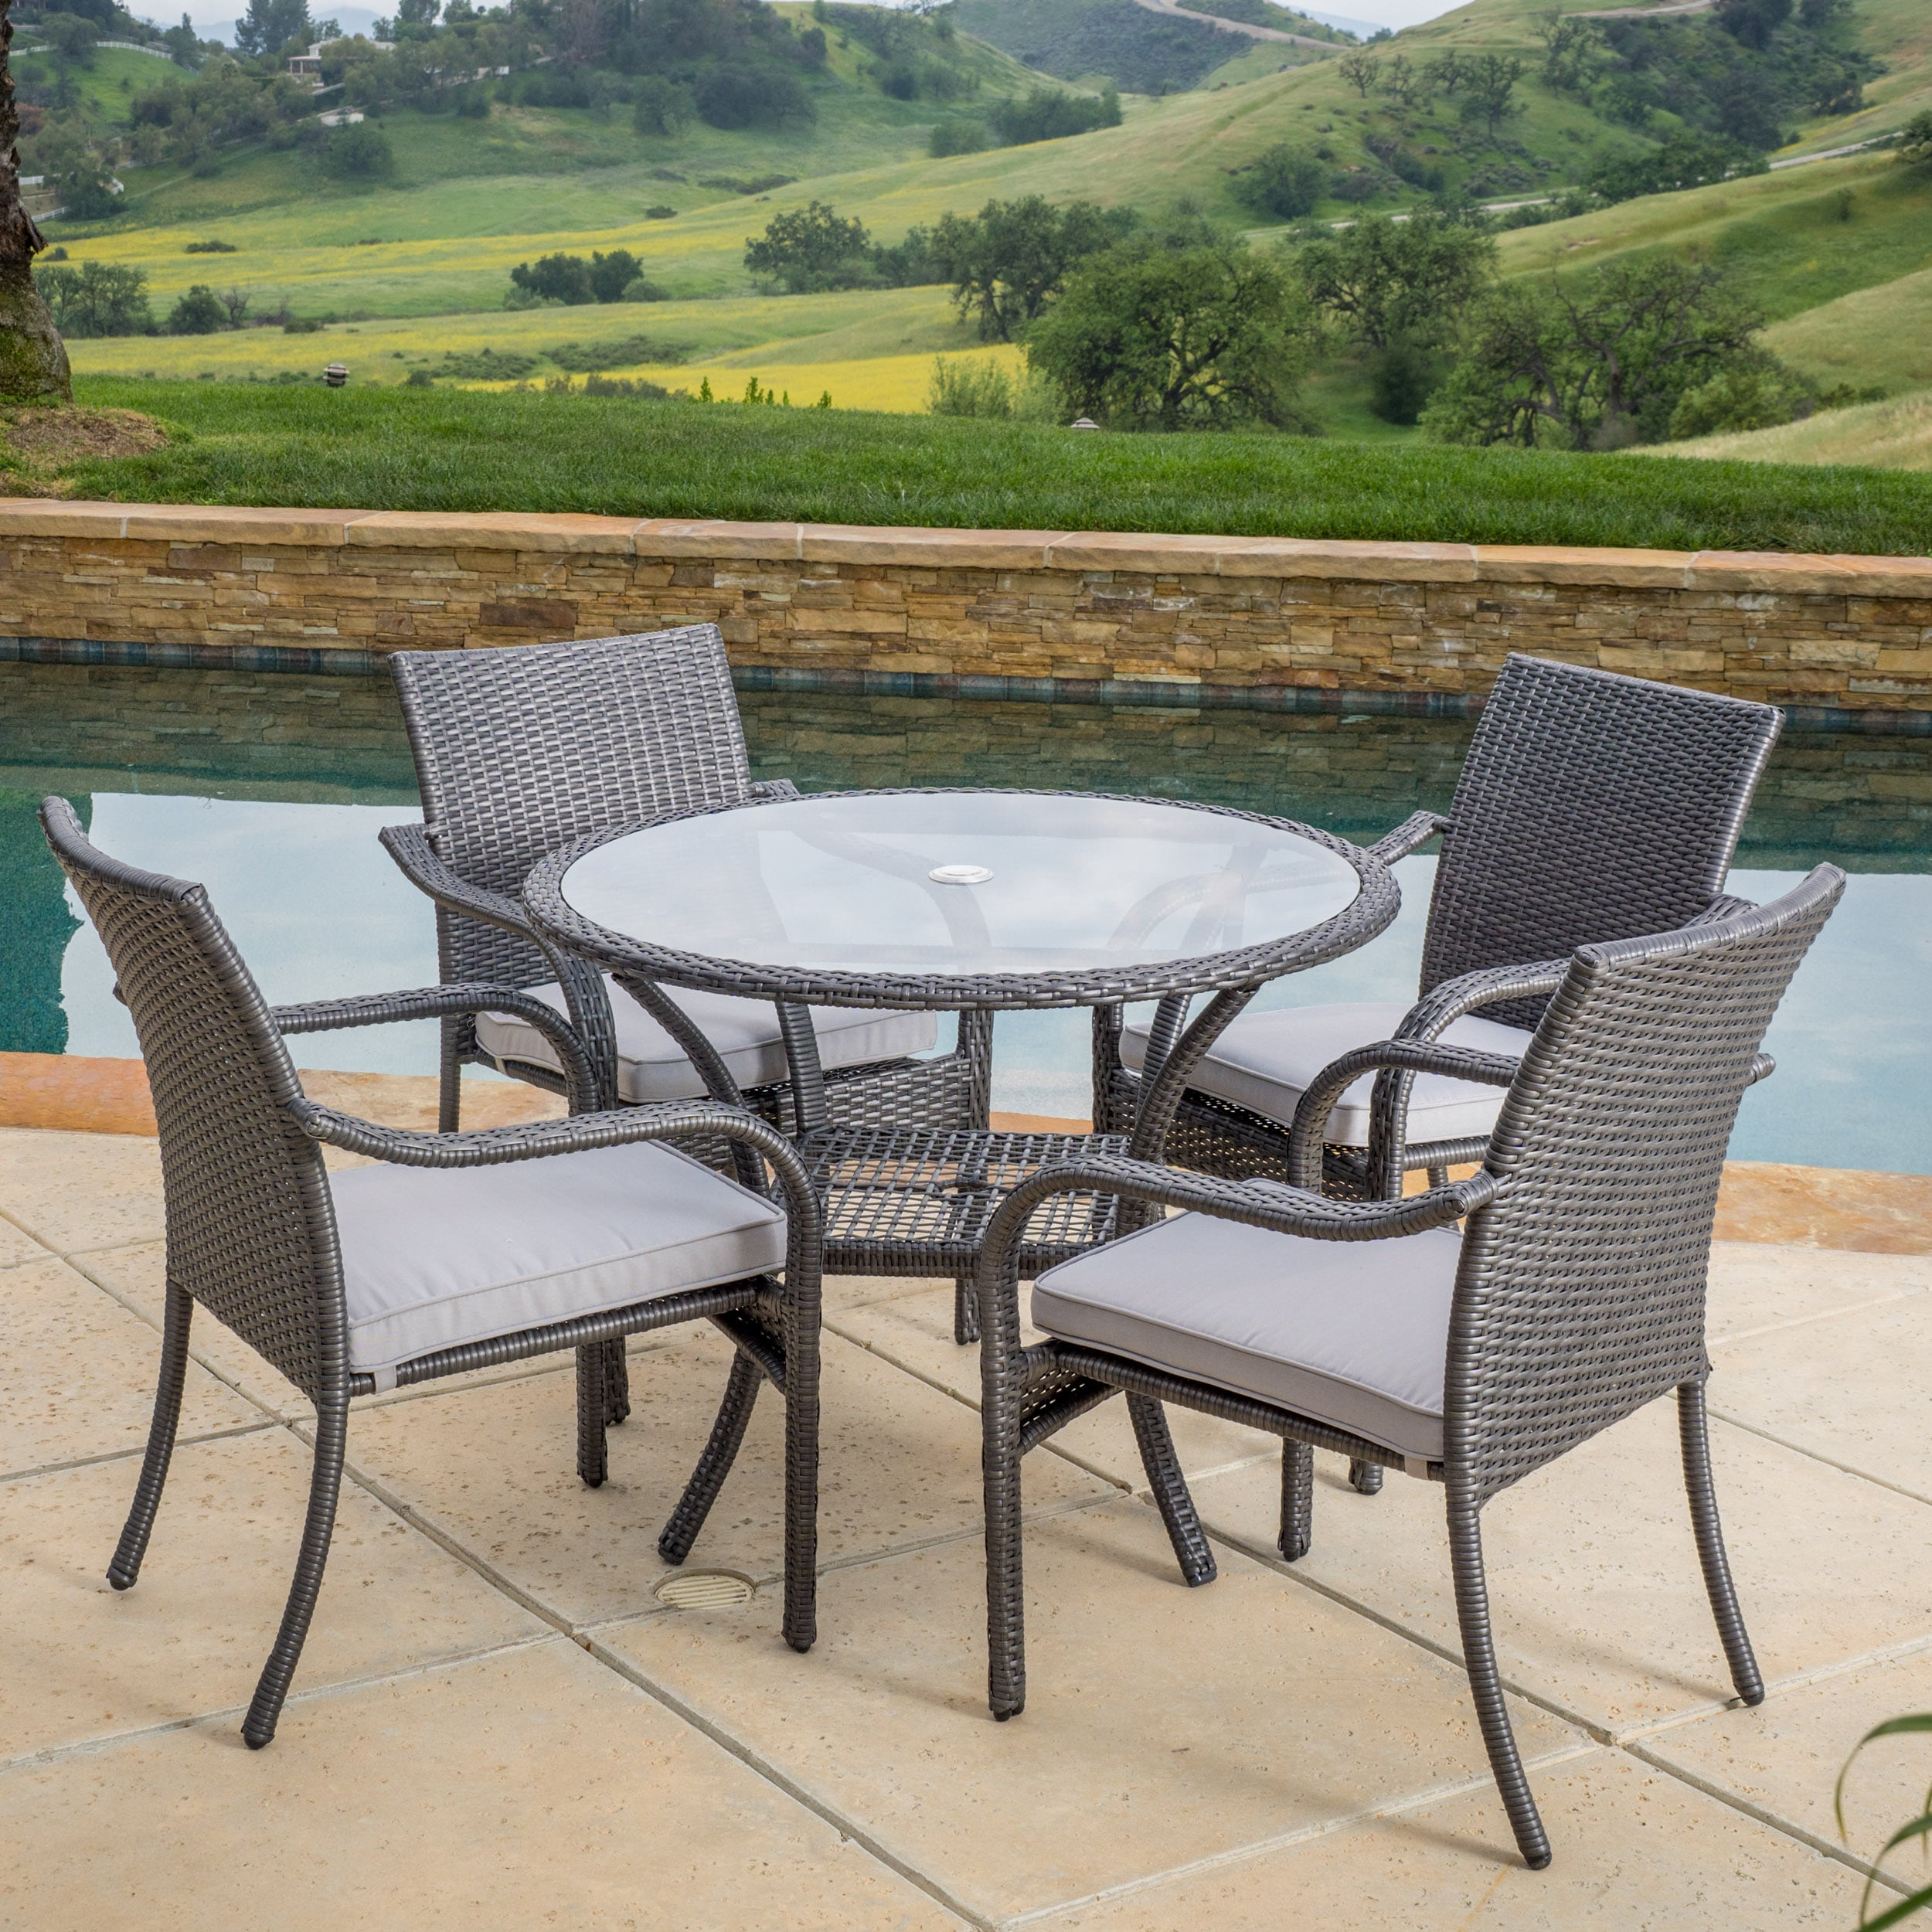 Shop San Pico Outdoor Wicker 5 Piece Dining Set With Cushions By  Christopher Knight Home   On Sale   Free Shipping Today   Overstock.com    10039897